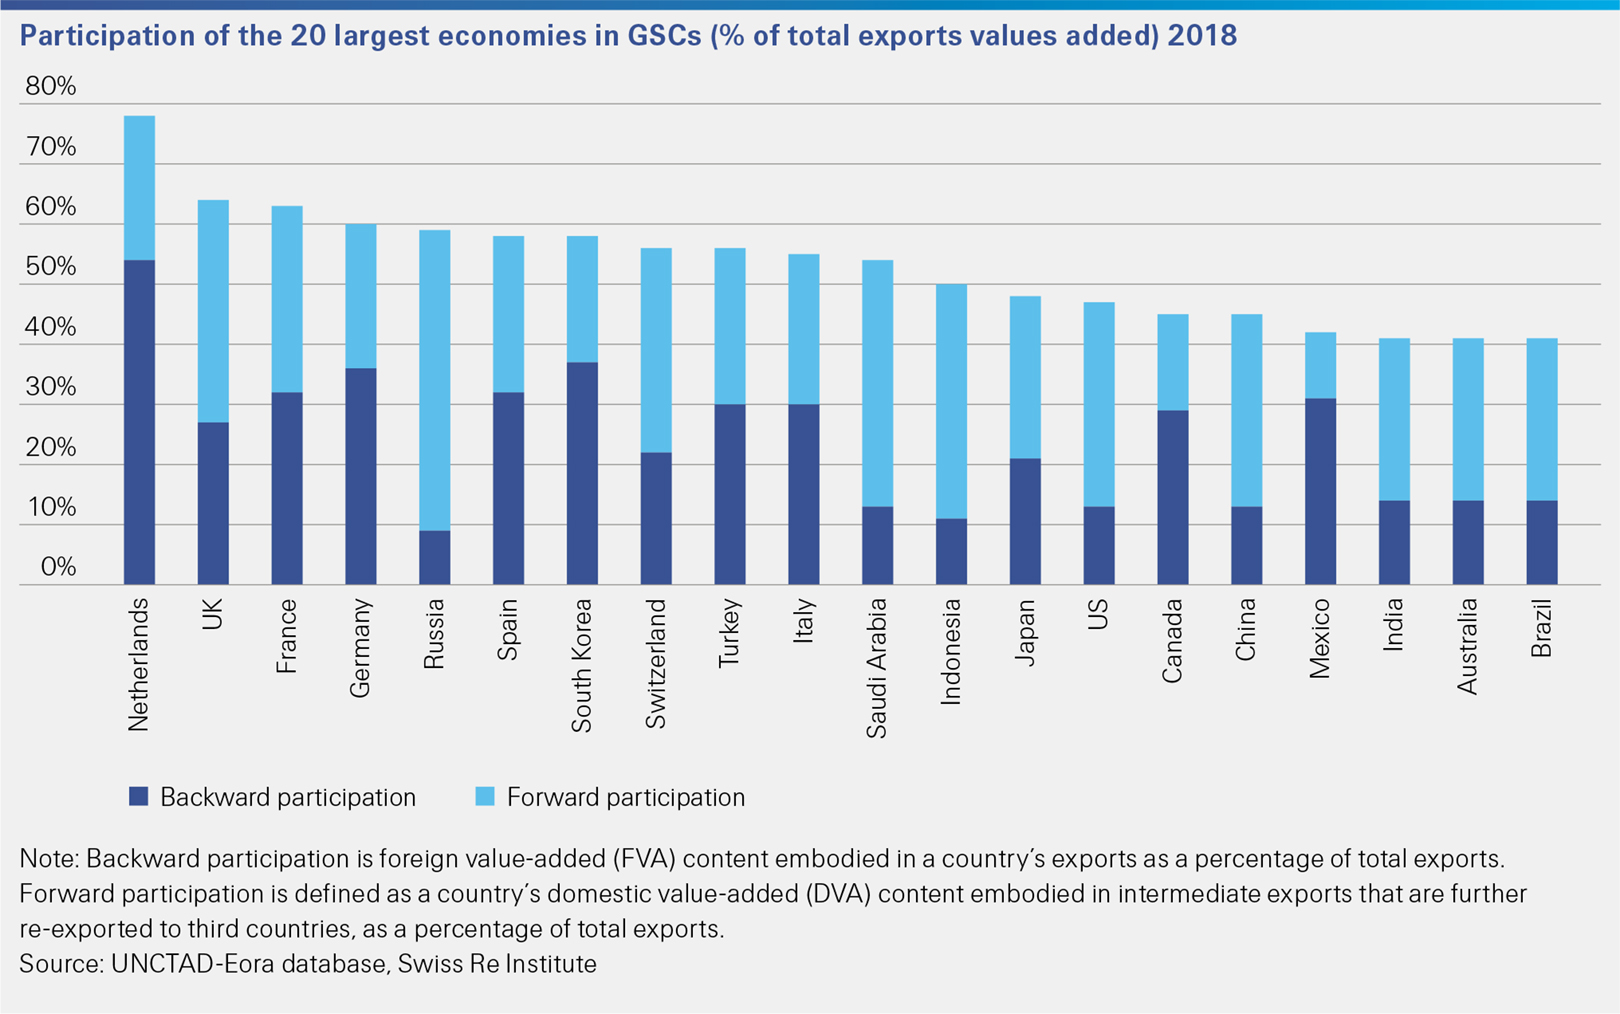 This Swiss Re Institute sigma 6/2020 figure shows the participation of the 20 largest economies in GSCs 2018.